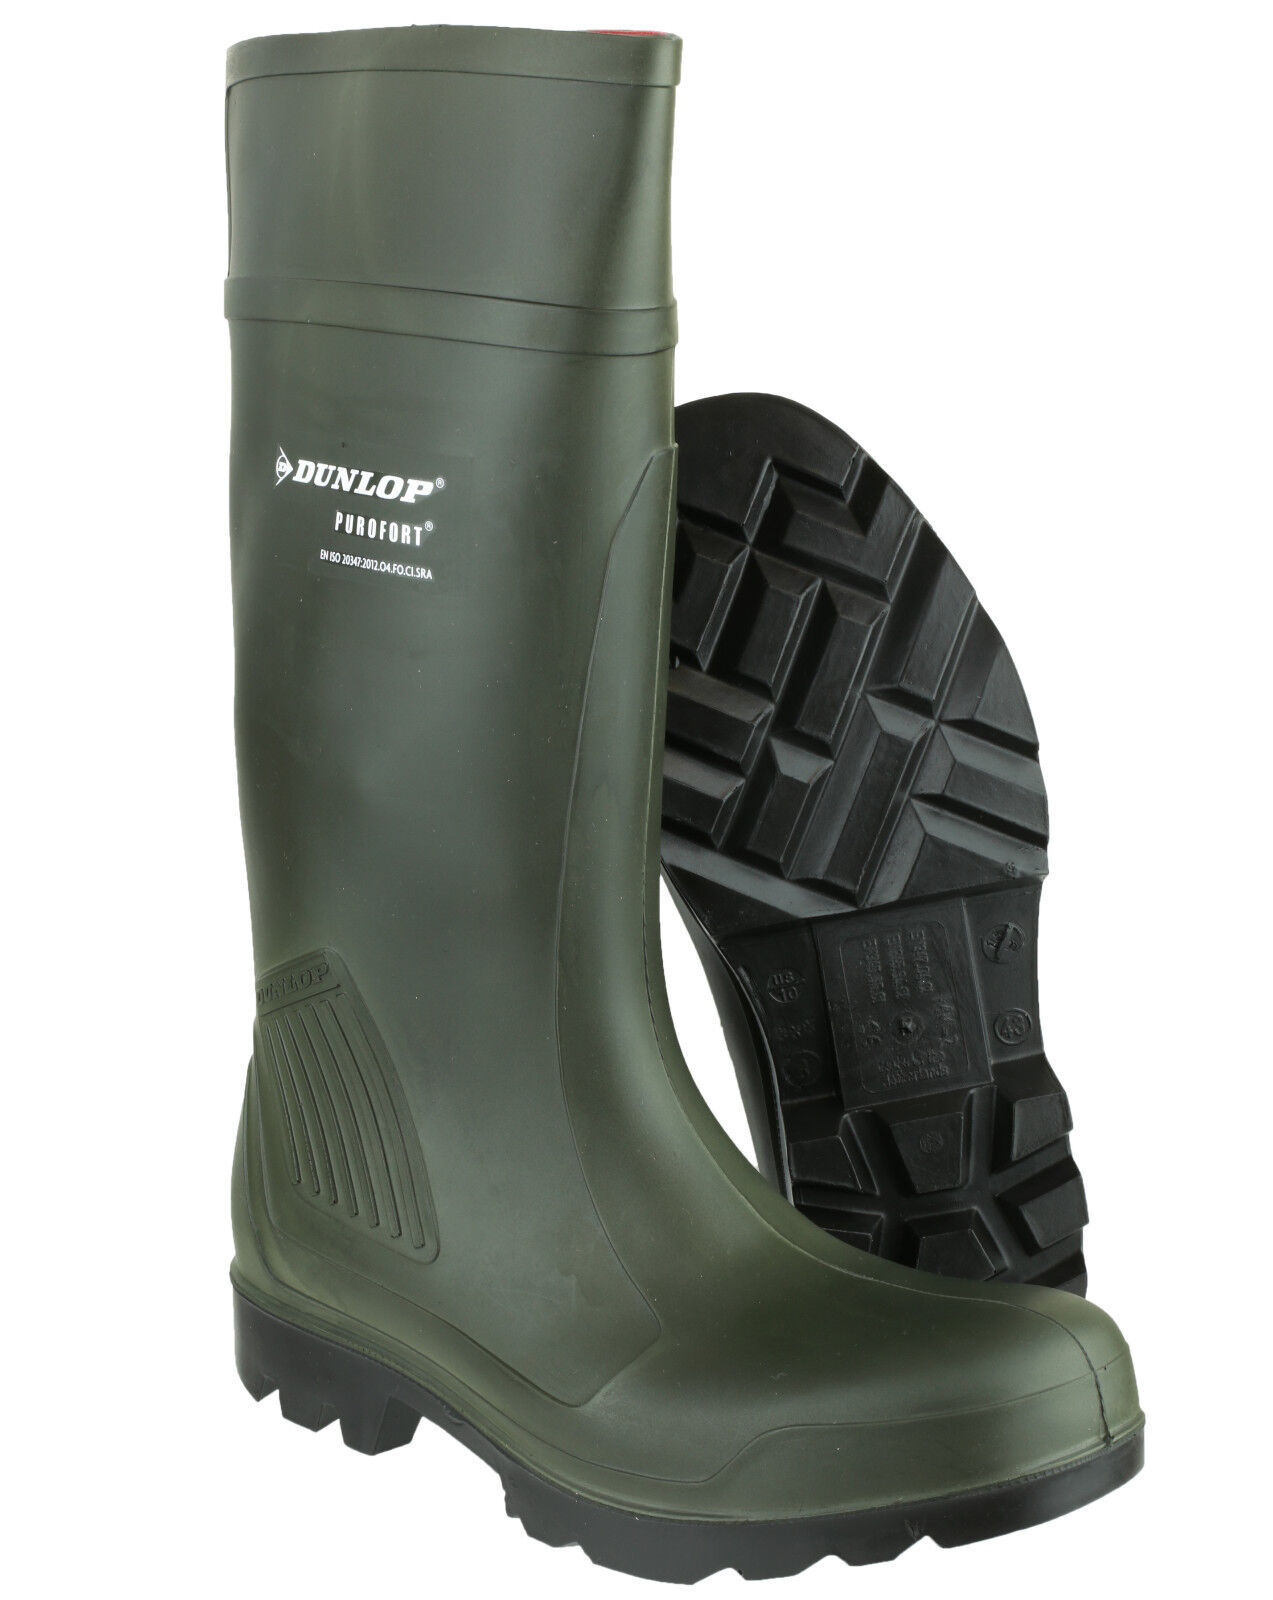 Dunlop Purofort Professional PRO Non-Safety Mens Work Wellingtons UK6-13